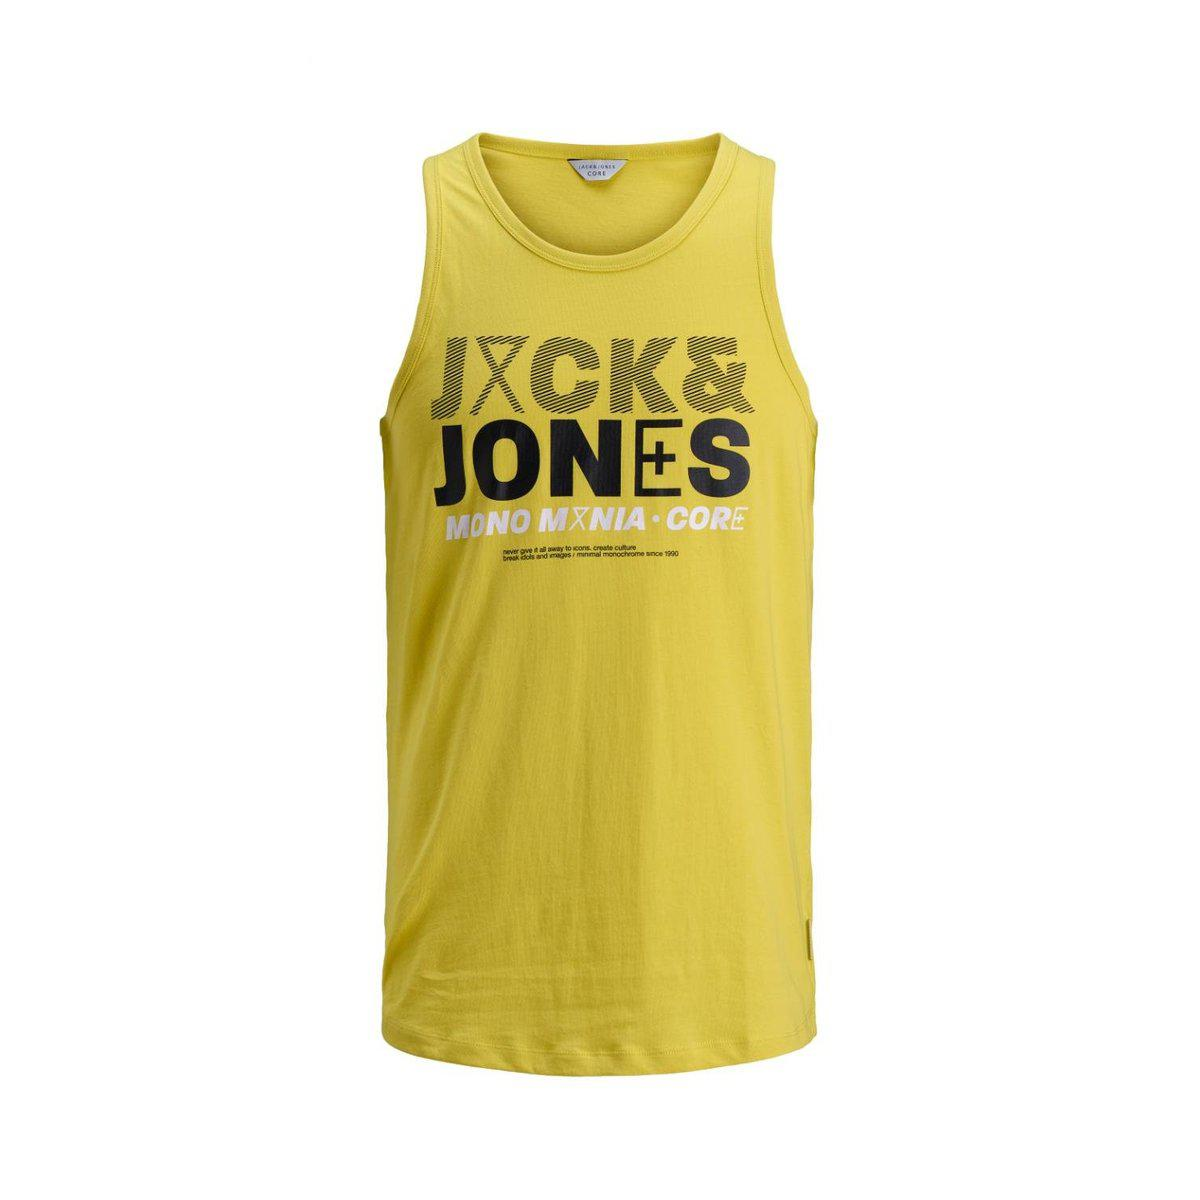 591ade4d05712e Lyst - Jack   Jones Jcomanny Core Vest Tank Top With Graphic in ...